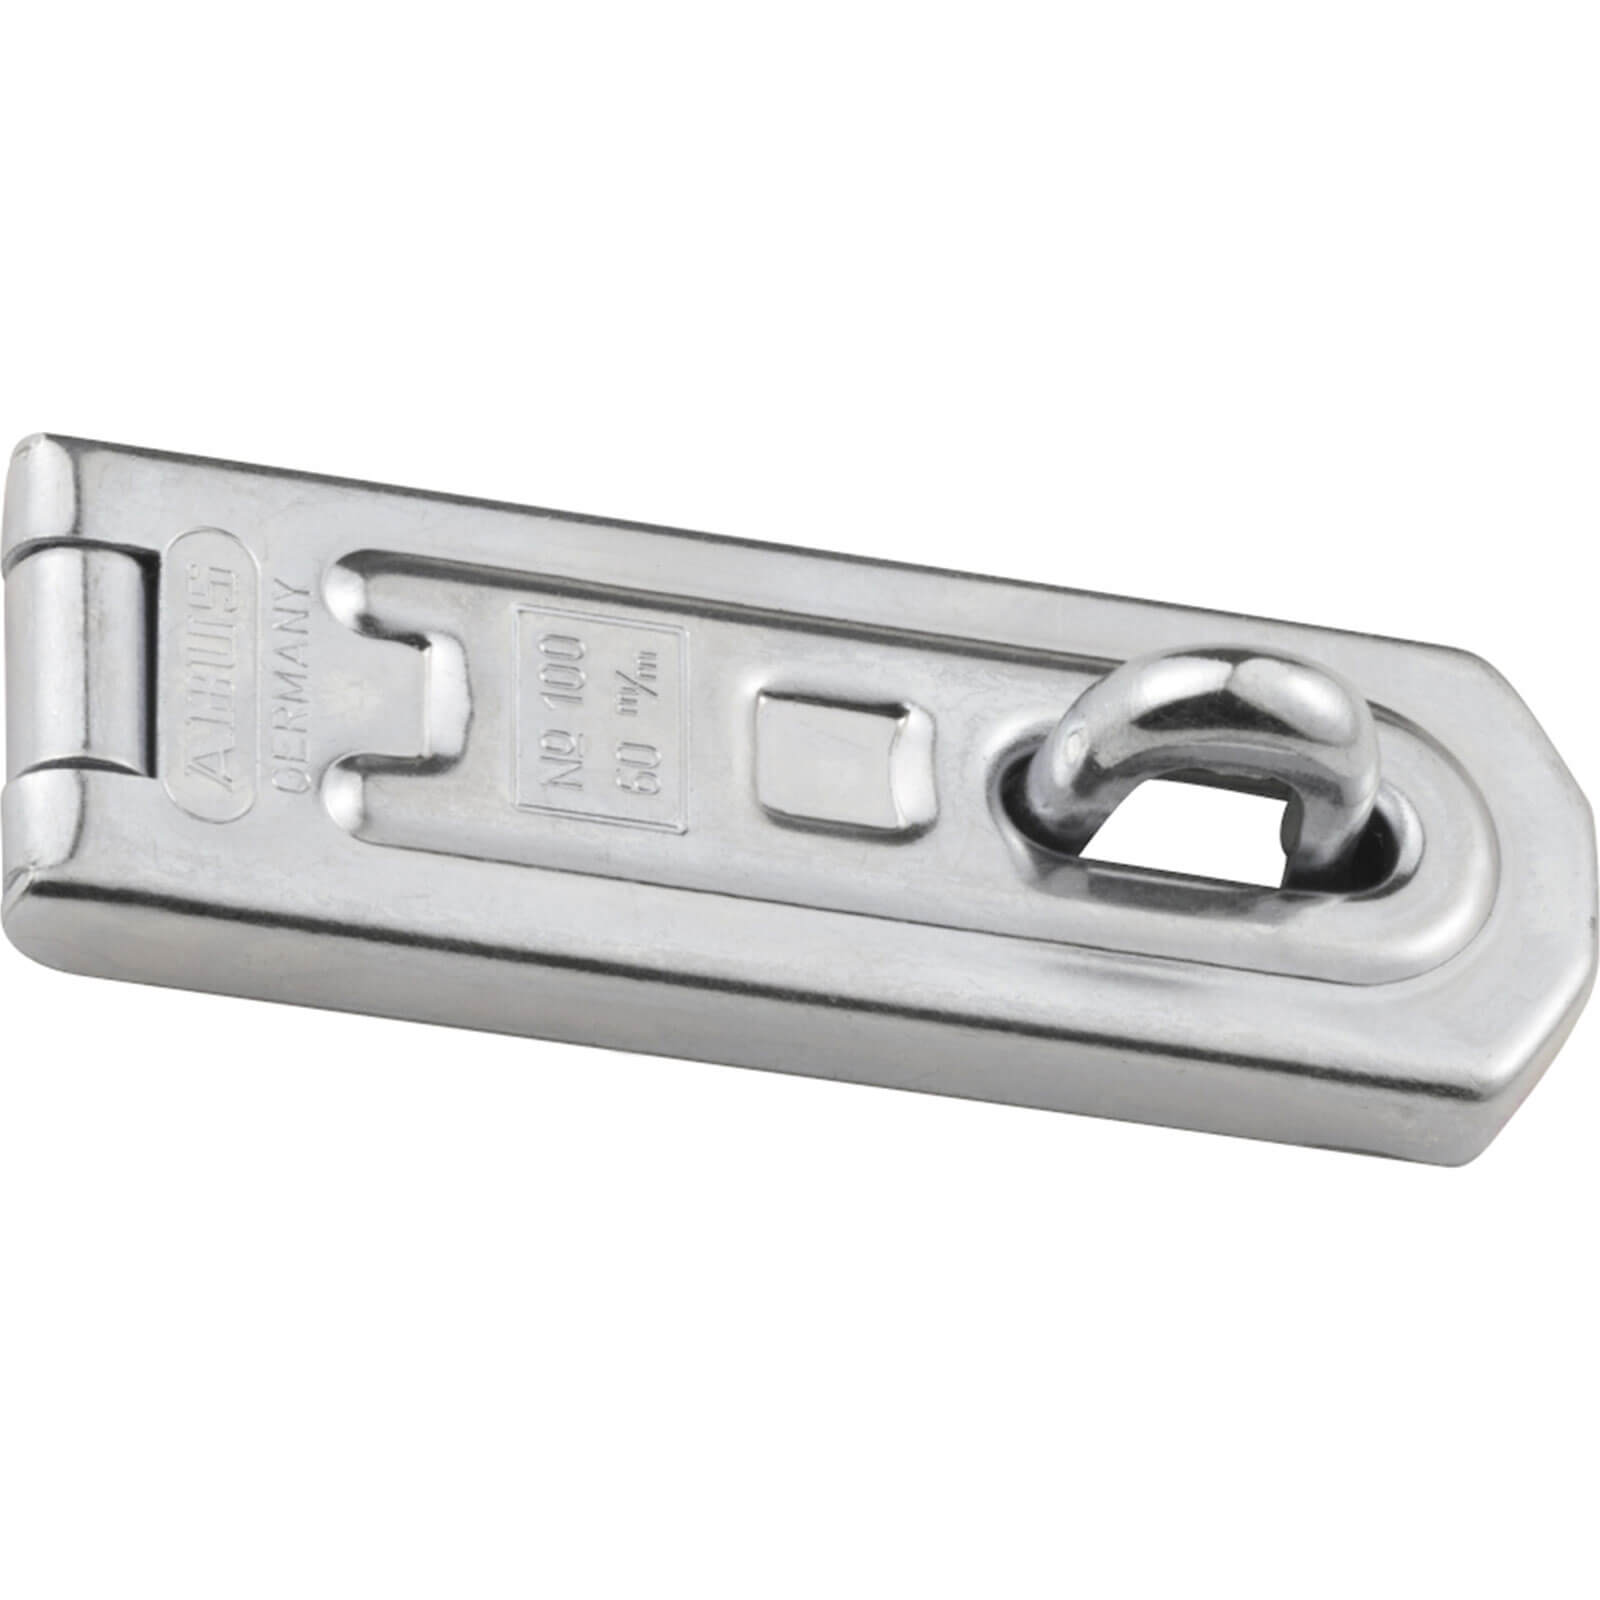 Image of Abus 100 Series Tradition Hasp & Staple 60mm